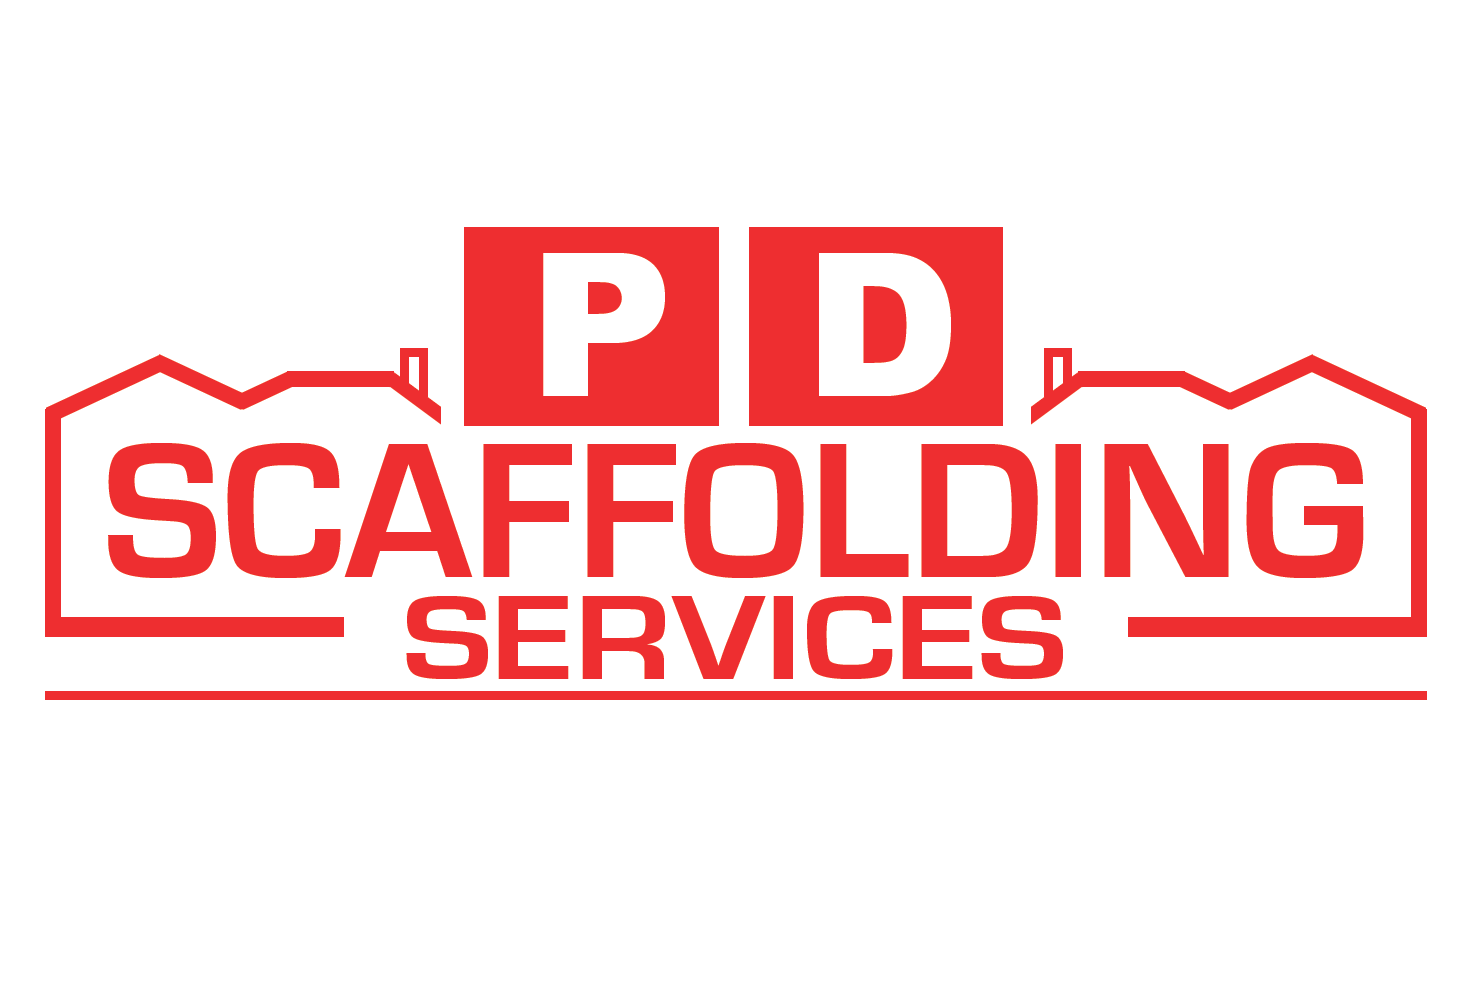 PD Scaffolding limited